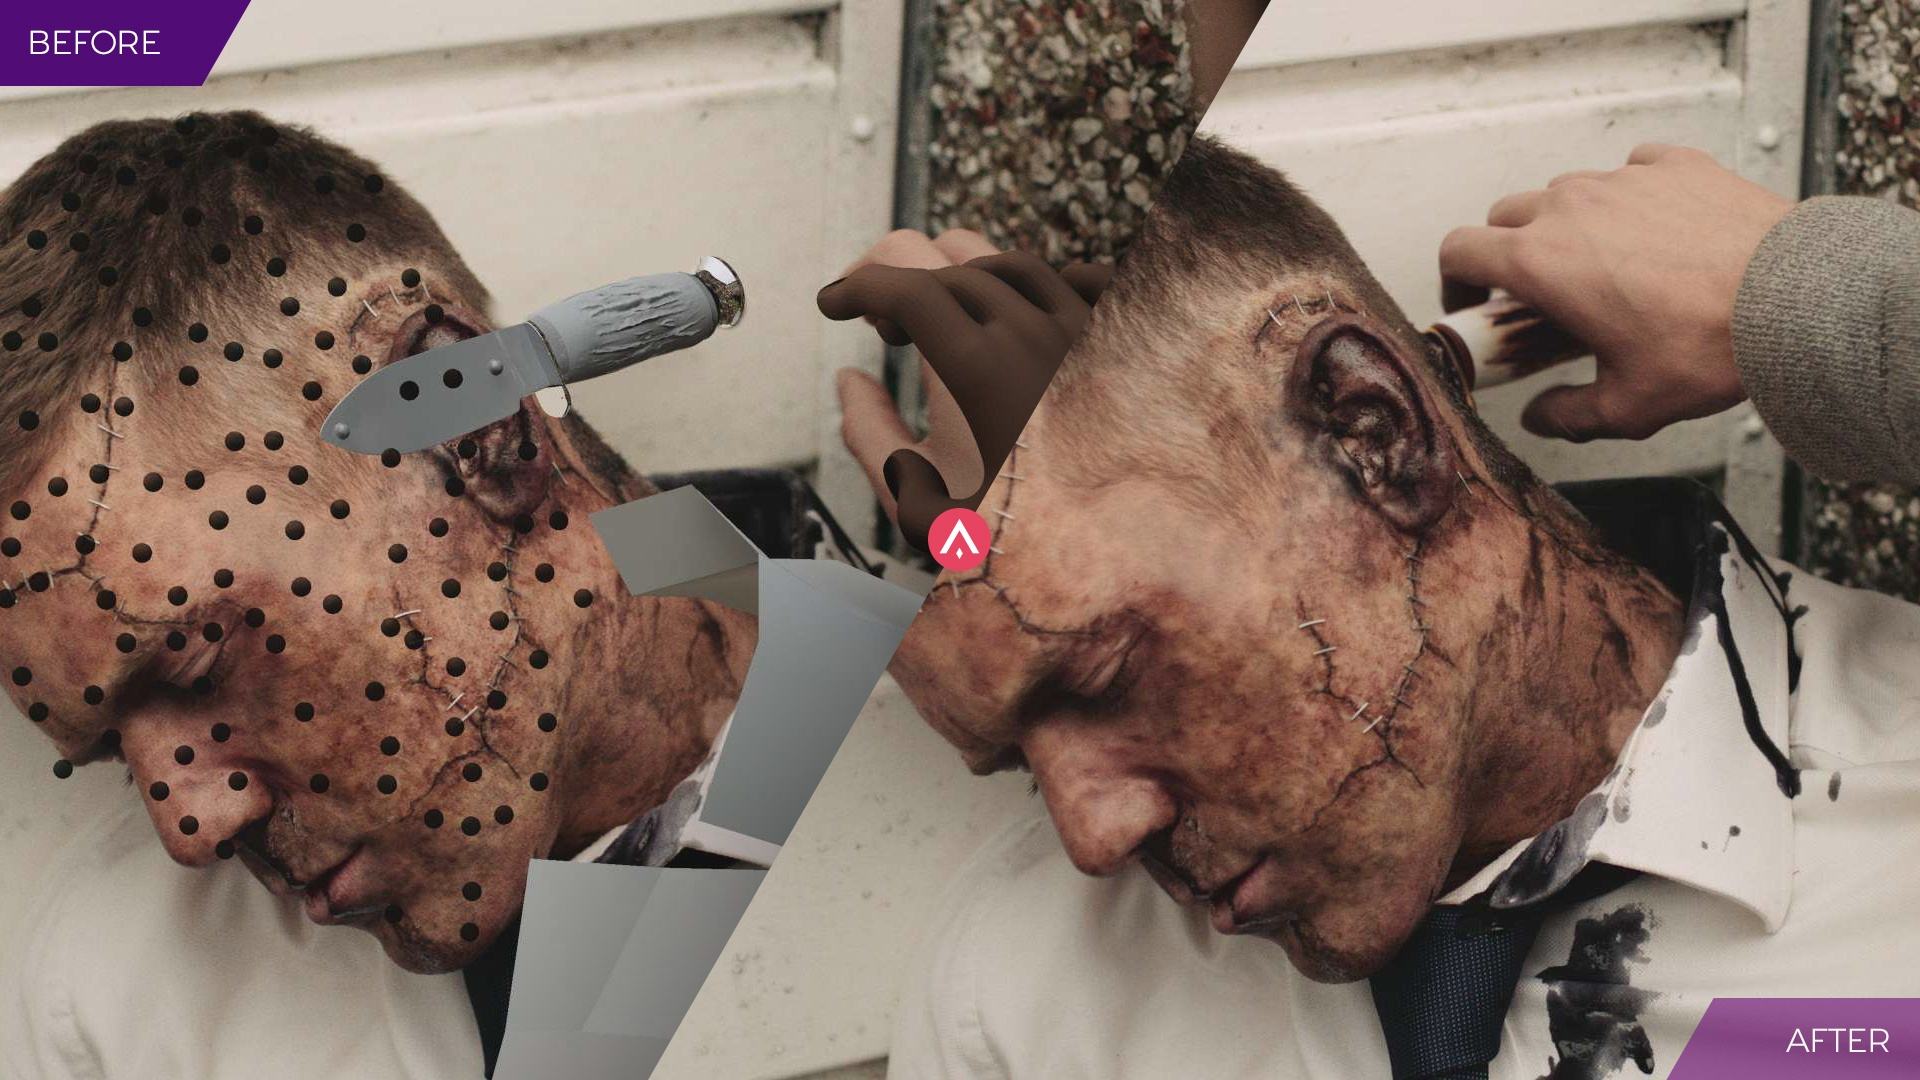 Before and After shot to demonstrate visual effects used on 'In the Flesh'